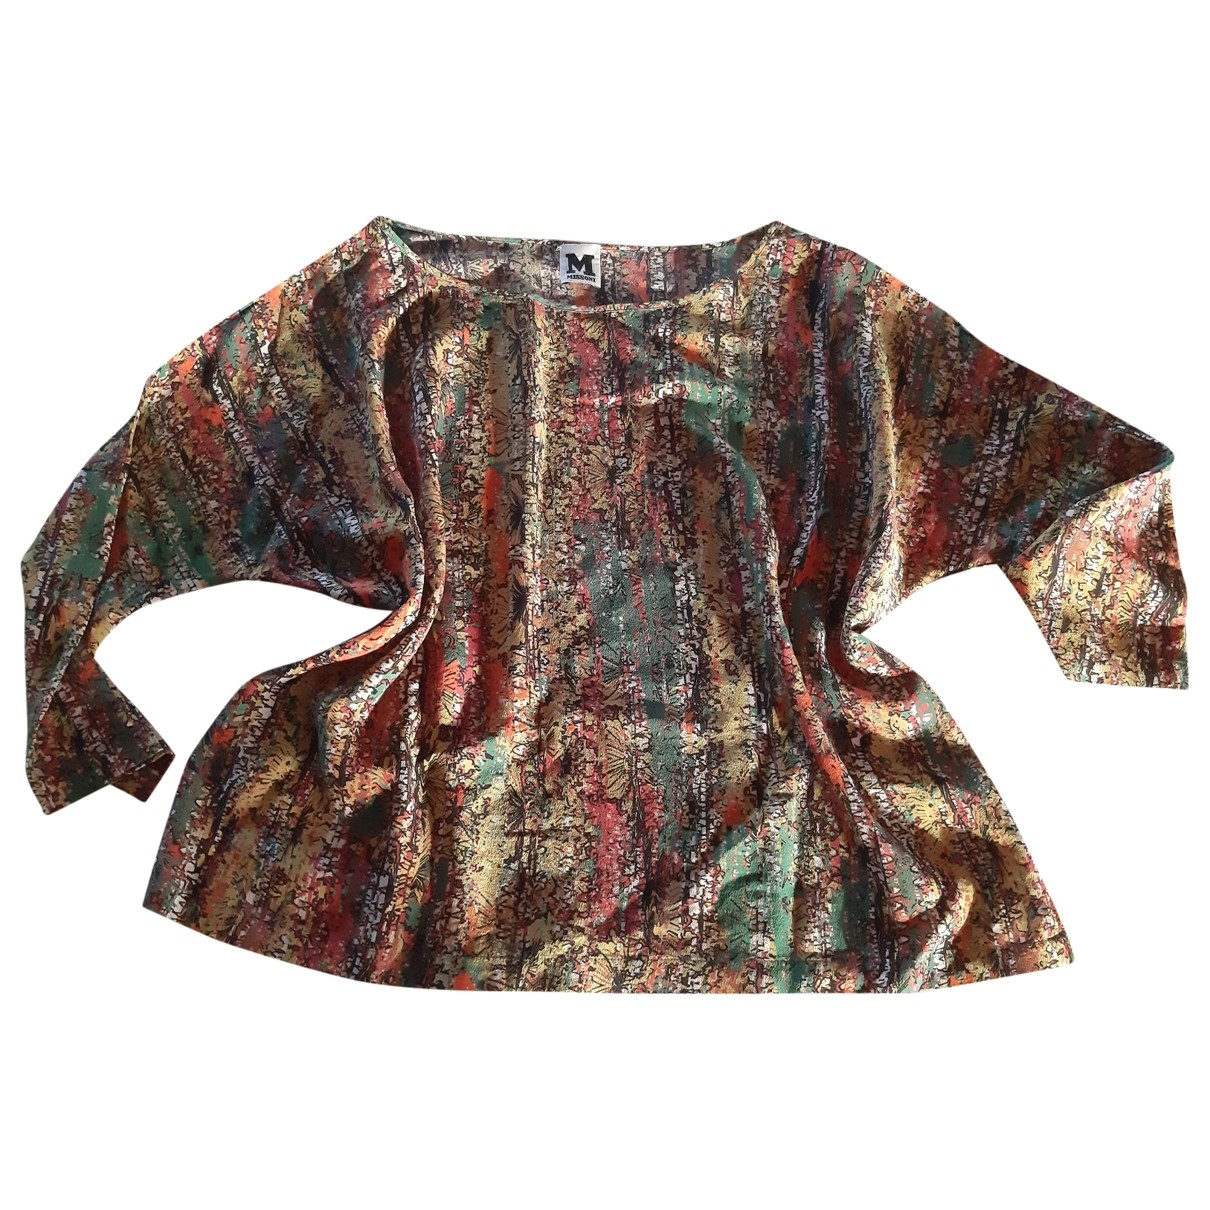 M Missoni \N Multicolour Silk  top for Women S International